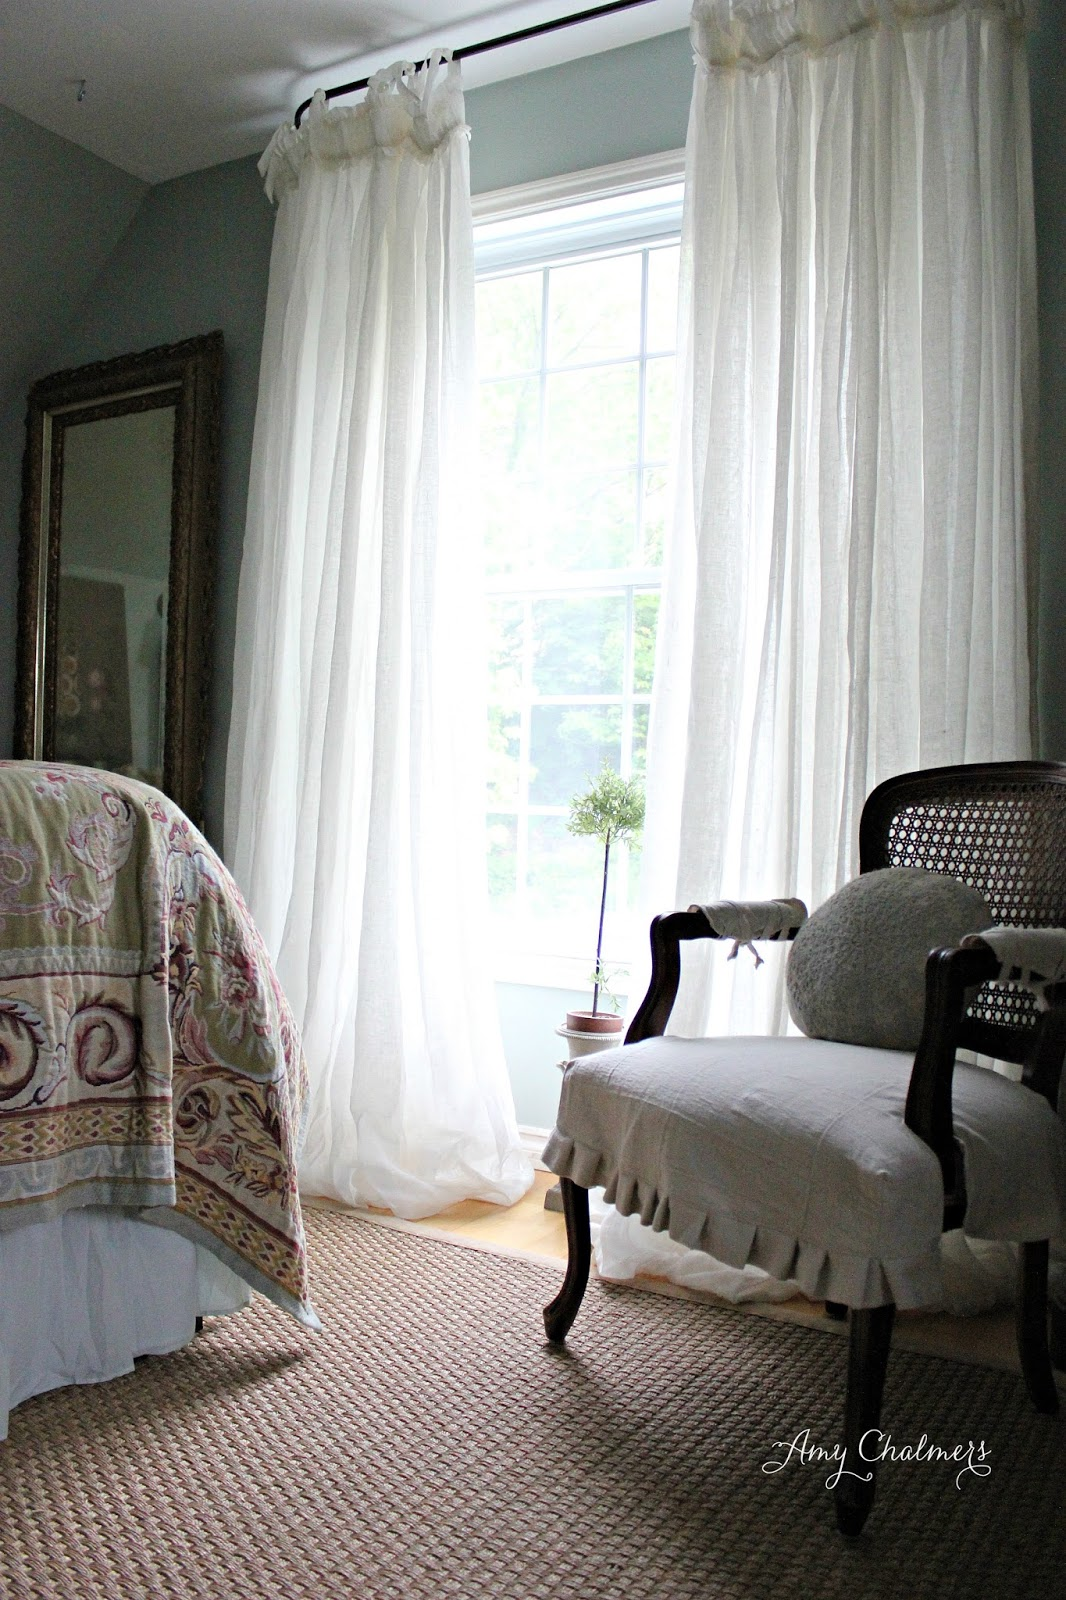 navy windows curtain curtains images short balloon blue for concept drapes stupendous windowain amazing bedroom excellent window